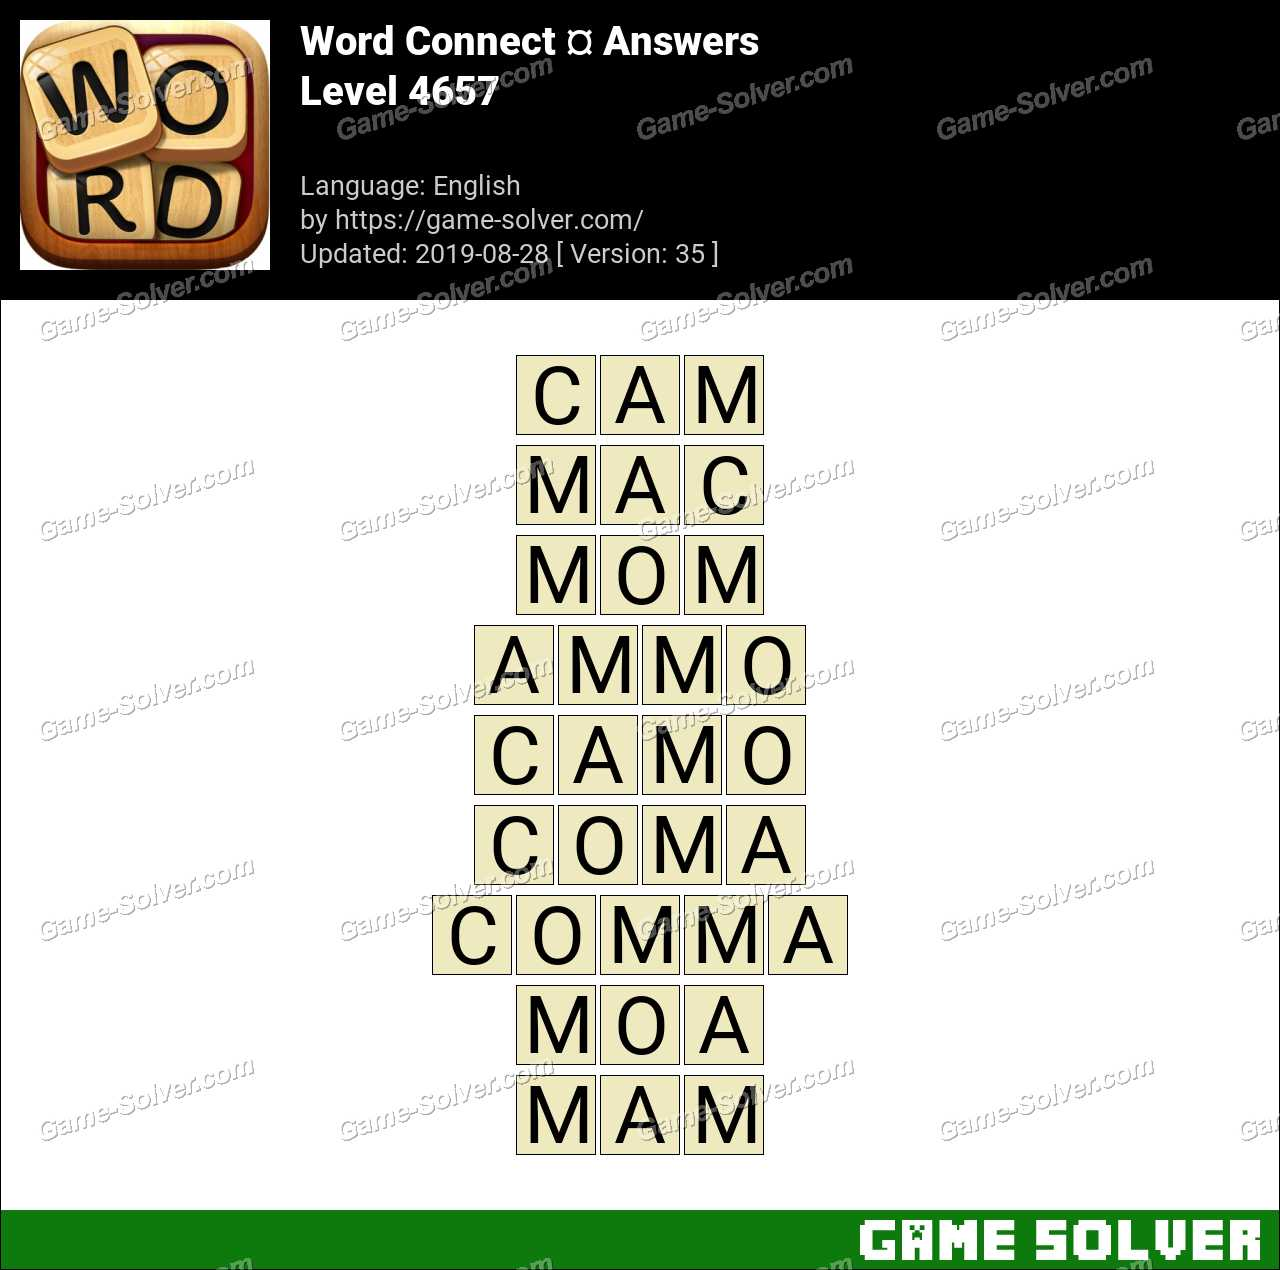 Word Connect Level 4657 Answers